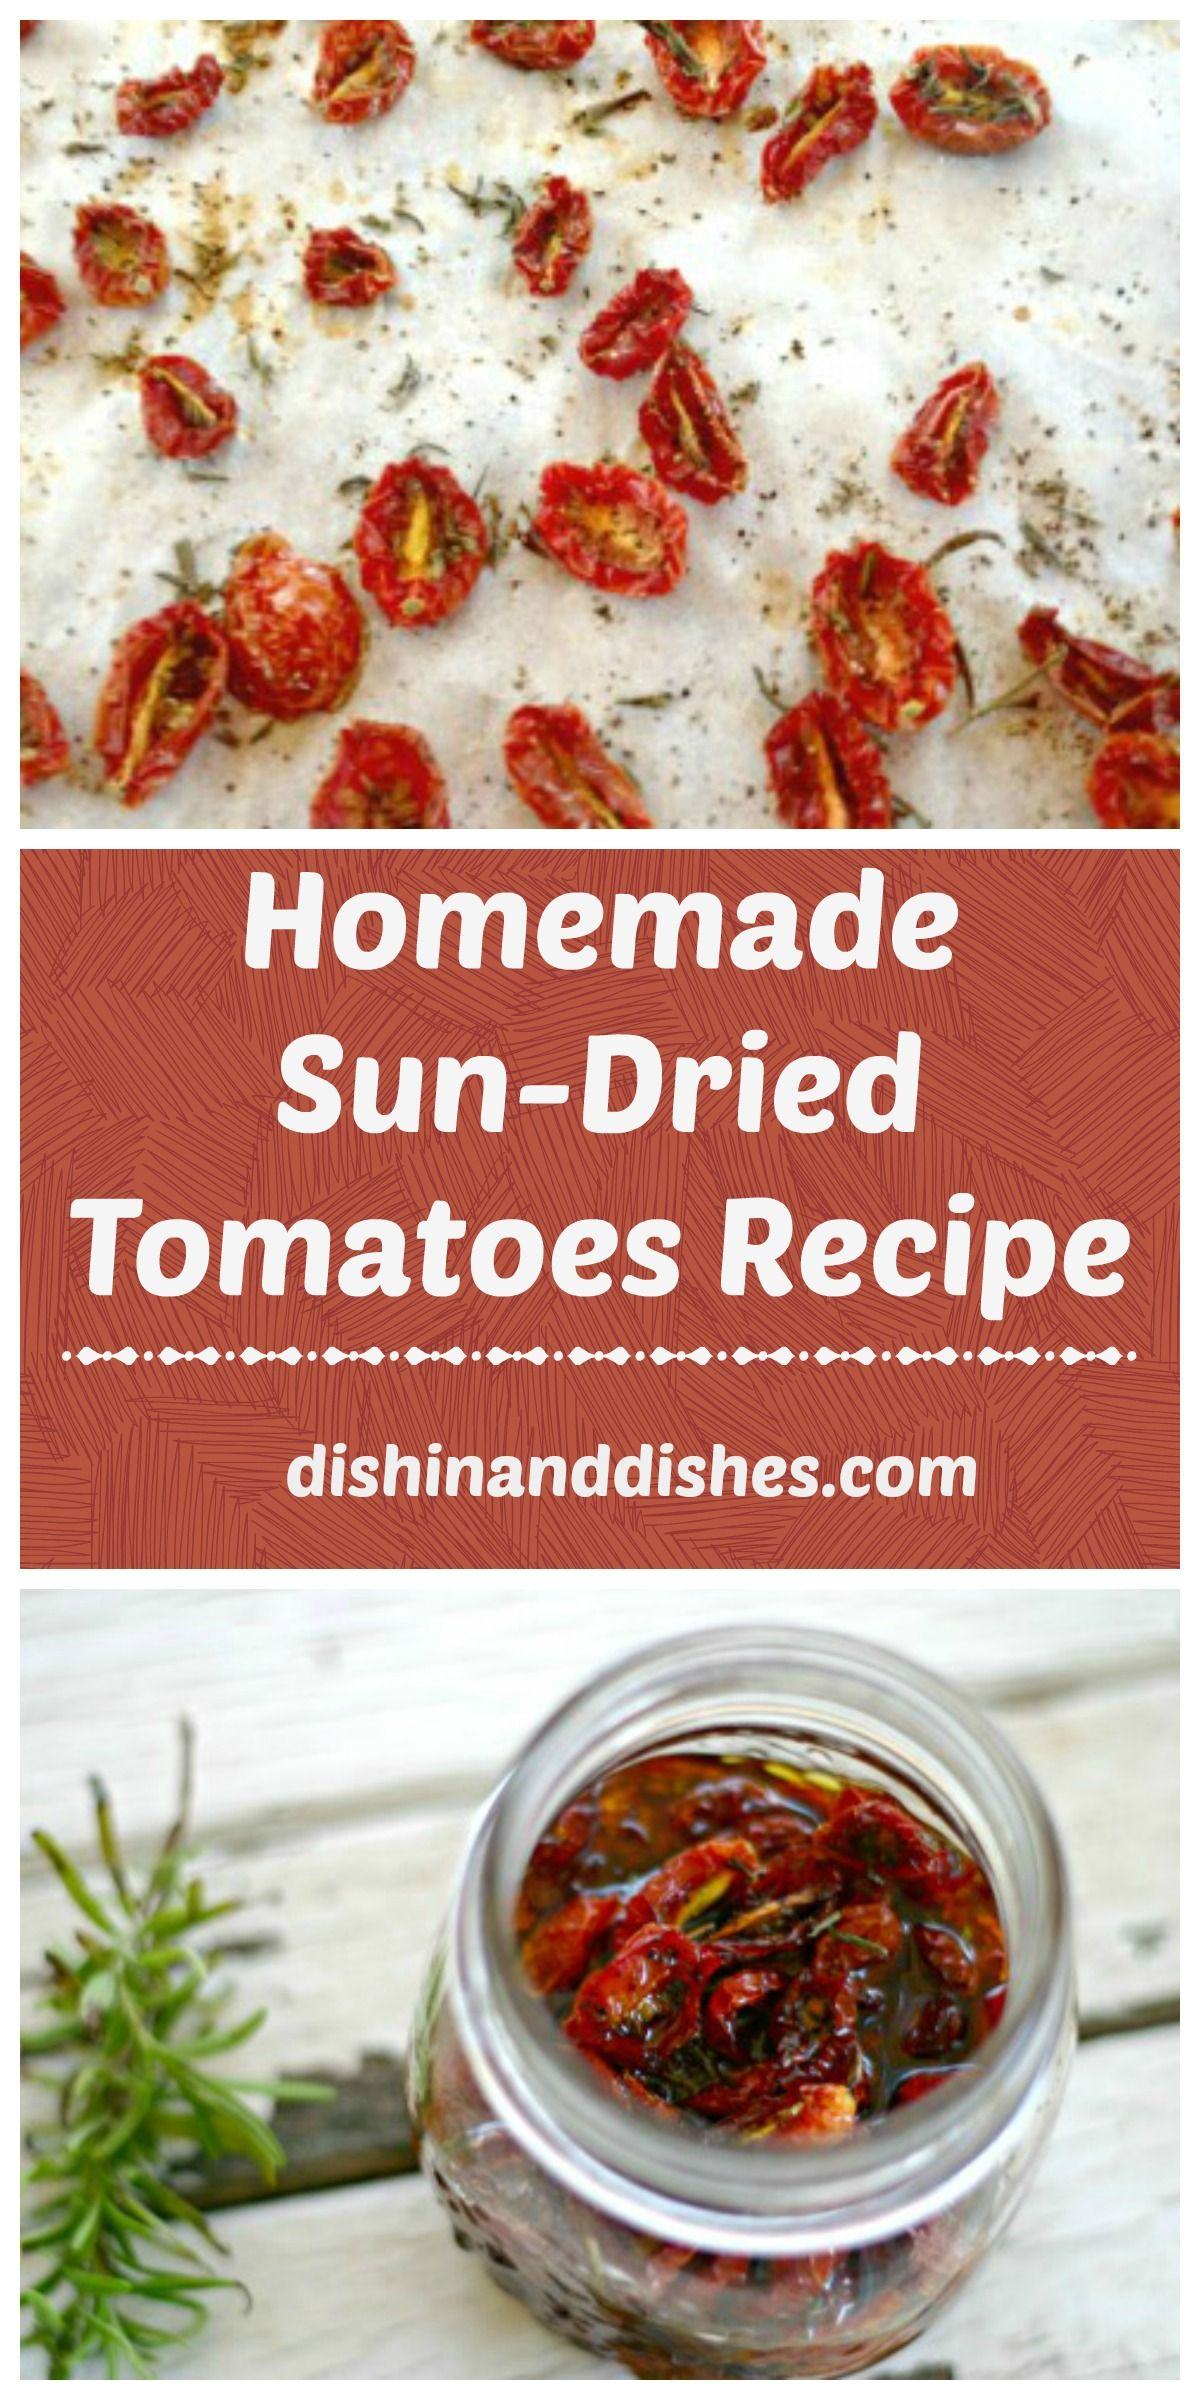 Check out How to Make Homemade Sun-Dried (Oven Dried ...